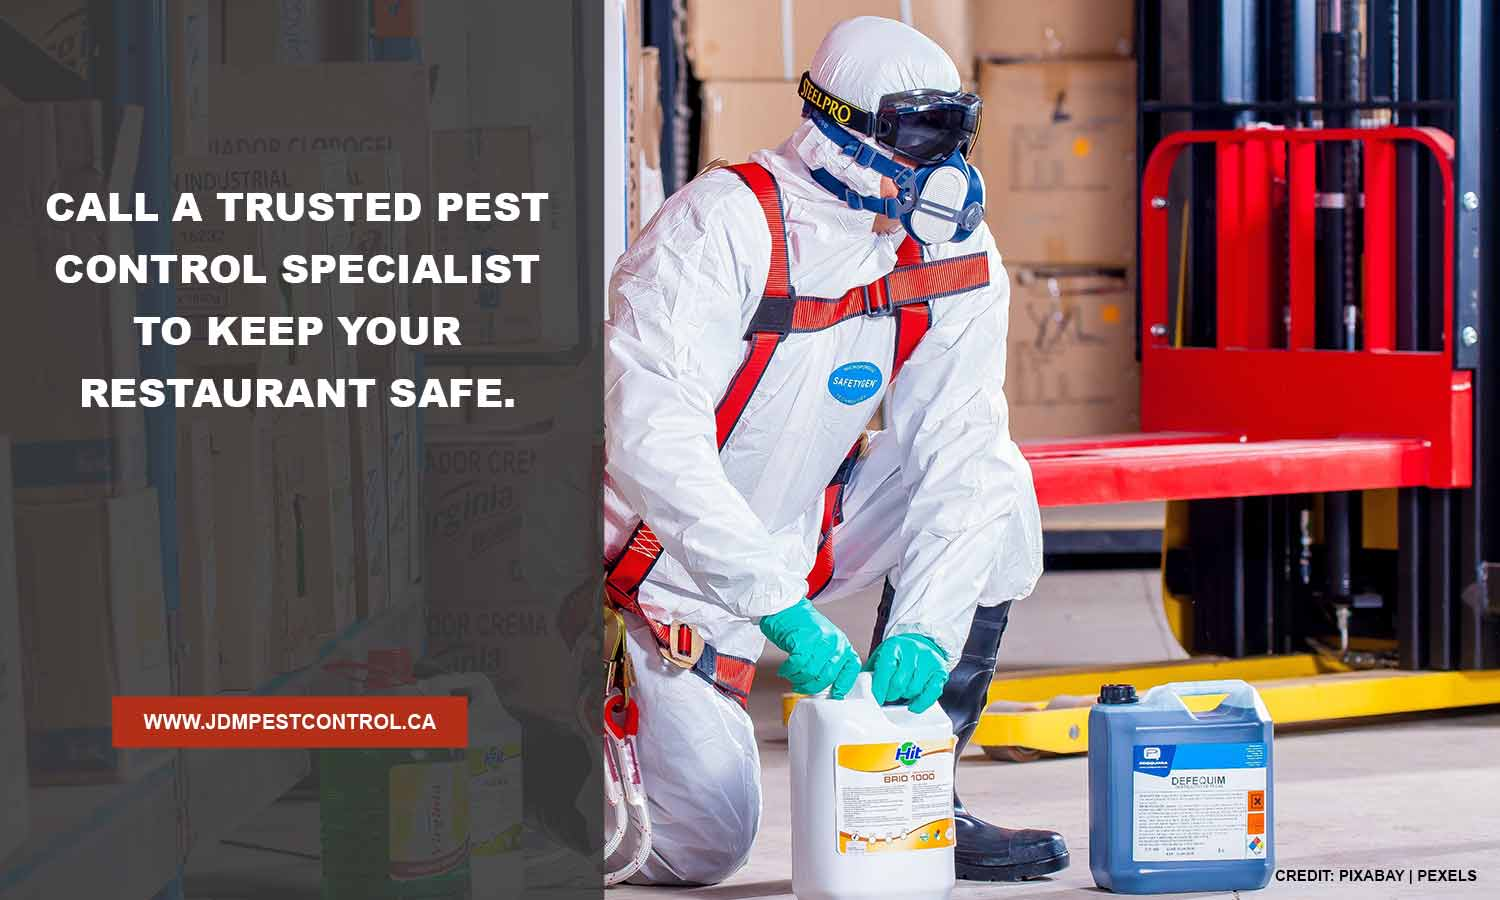 Call a trusted pest control specialist to keep your restaurant safe.